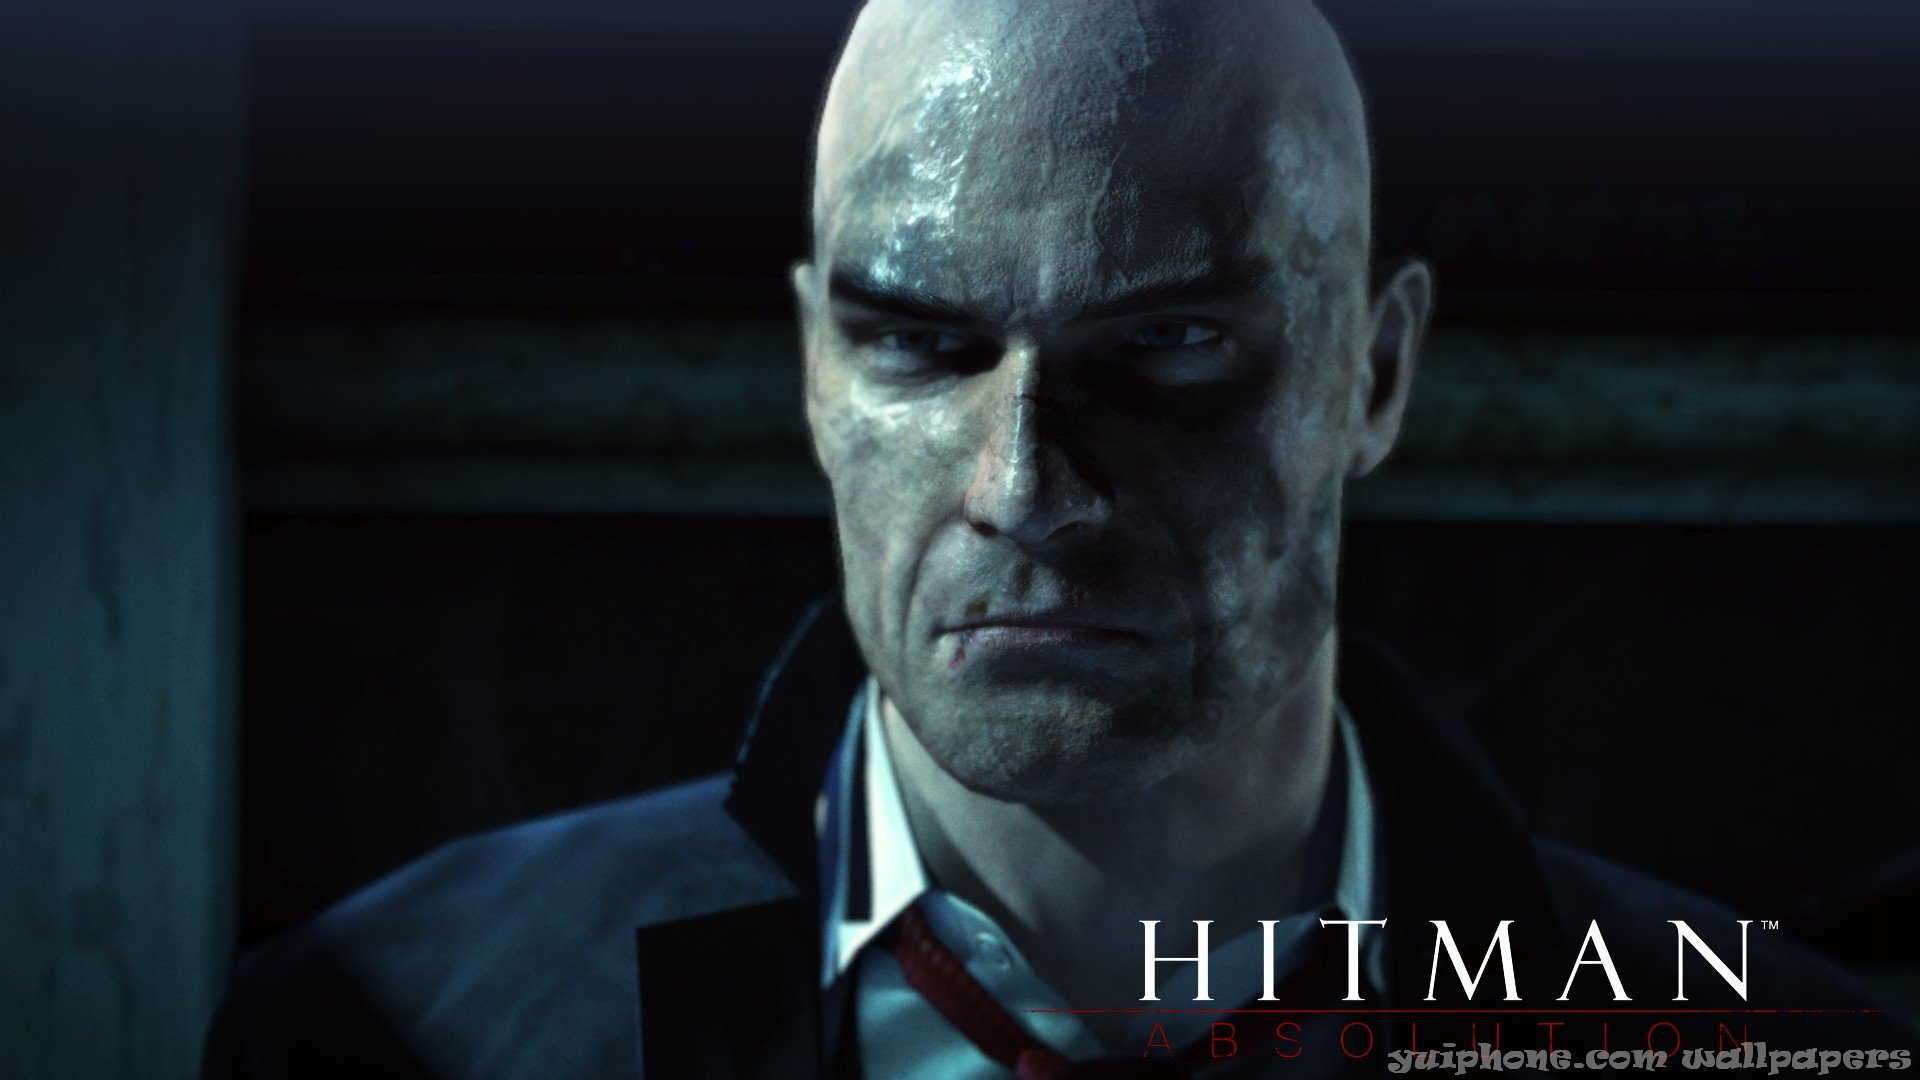 hitman after burning hotel close up hitman absolution wallpapers 1080p 1920x1080